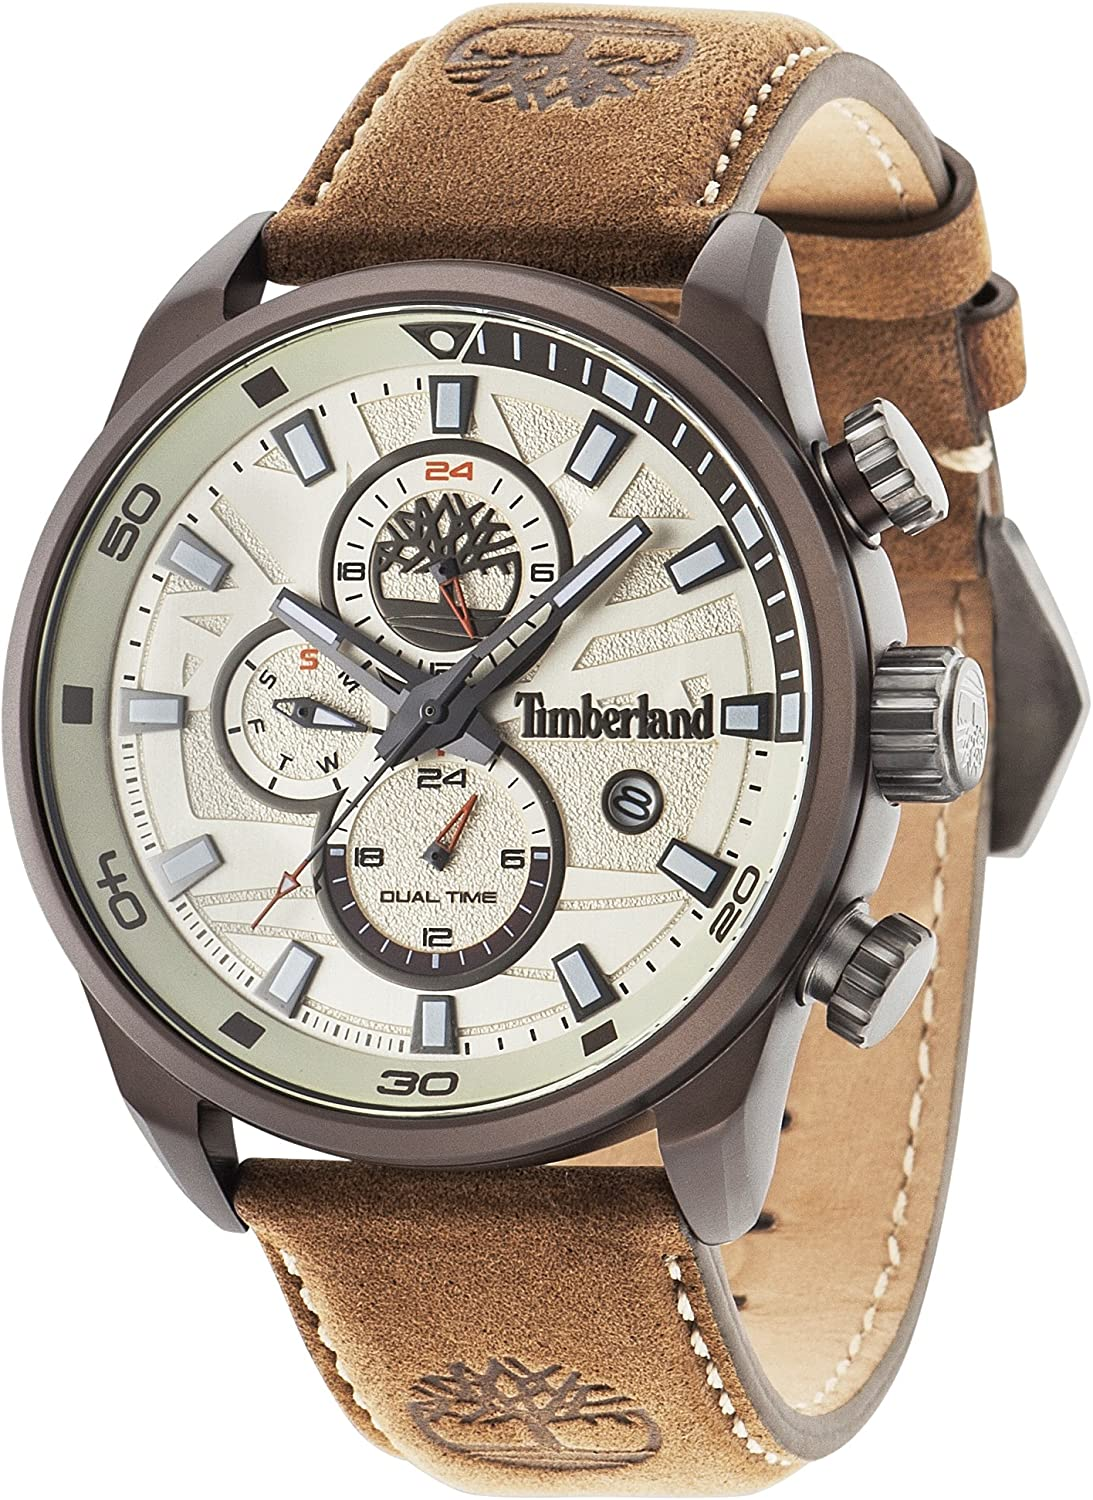 Enfatizar cigarro principal  Timberland Men's Quartz Watch with Beige Dial Analogue Display and Beige  (Light Brown) Leather Strap 14816JLBN/07: Amazon.co.uk: Watches